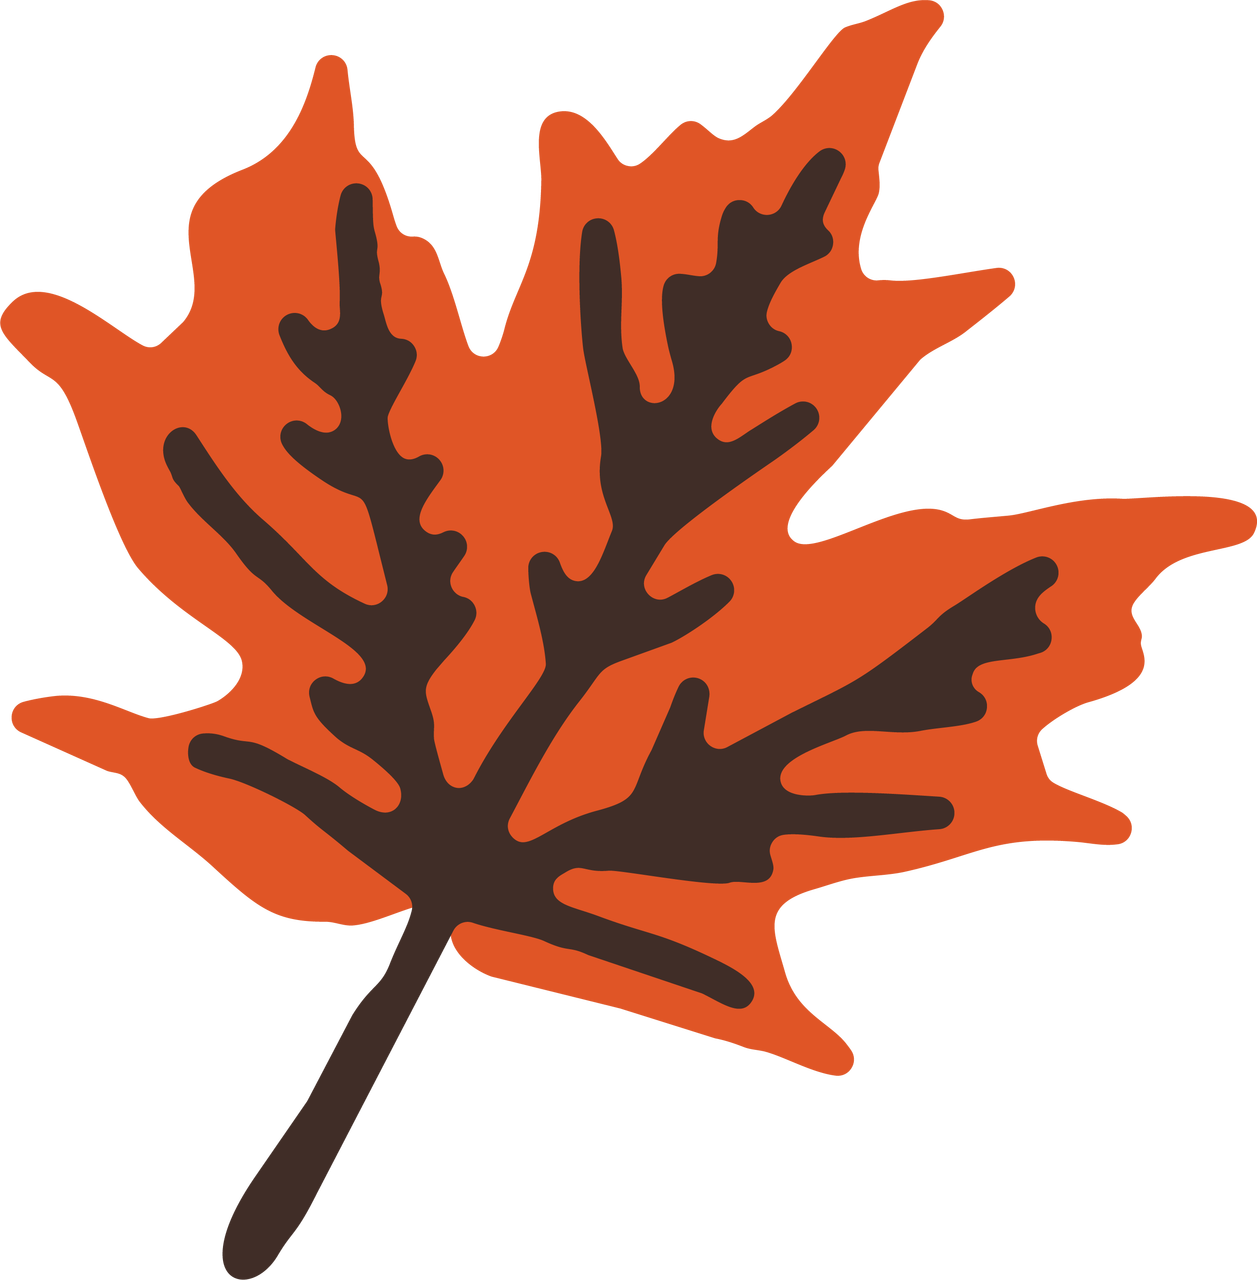 Fall Break Leaf #2 SVG Cut File